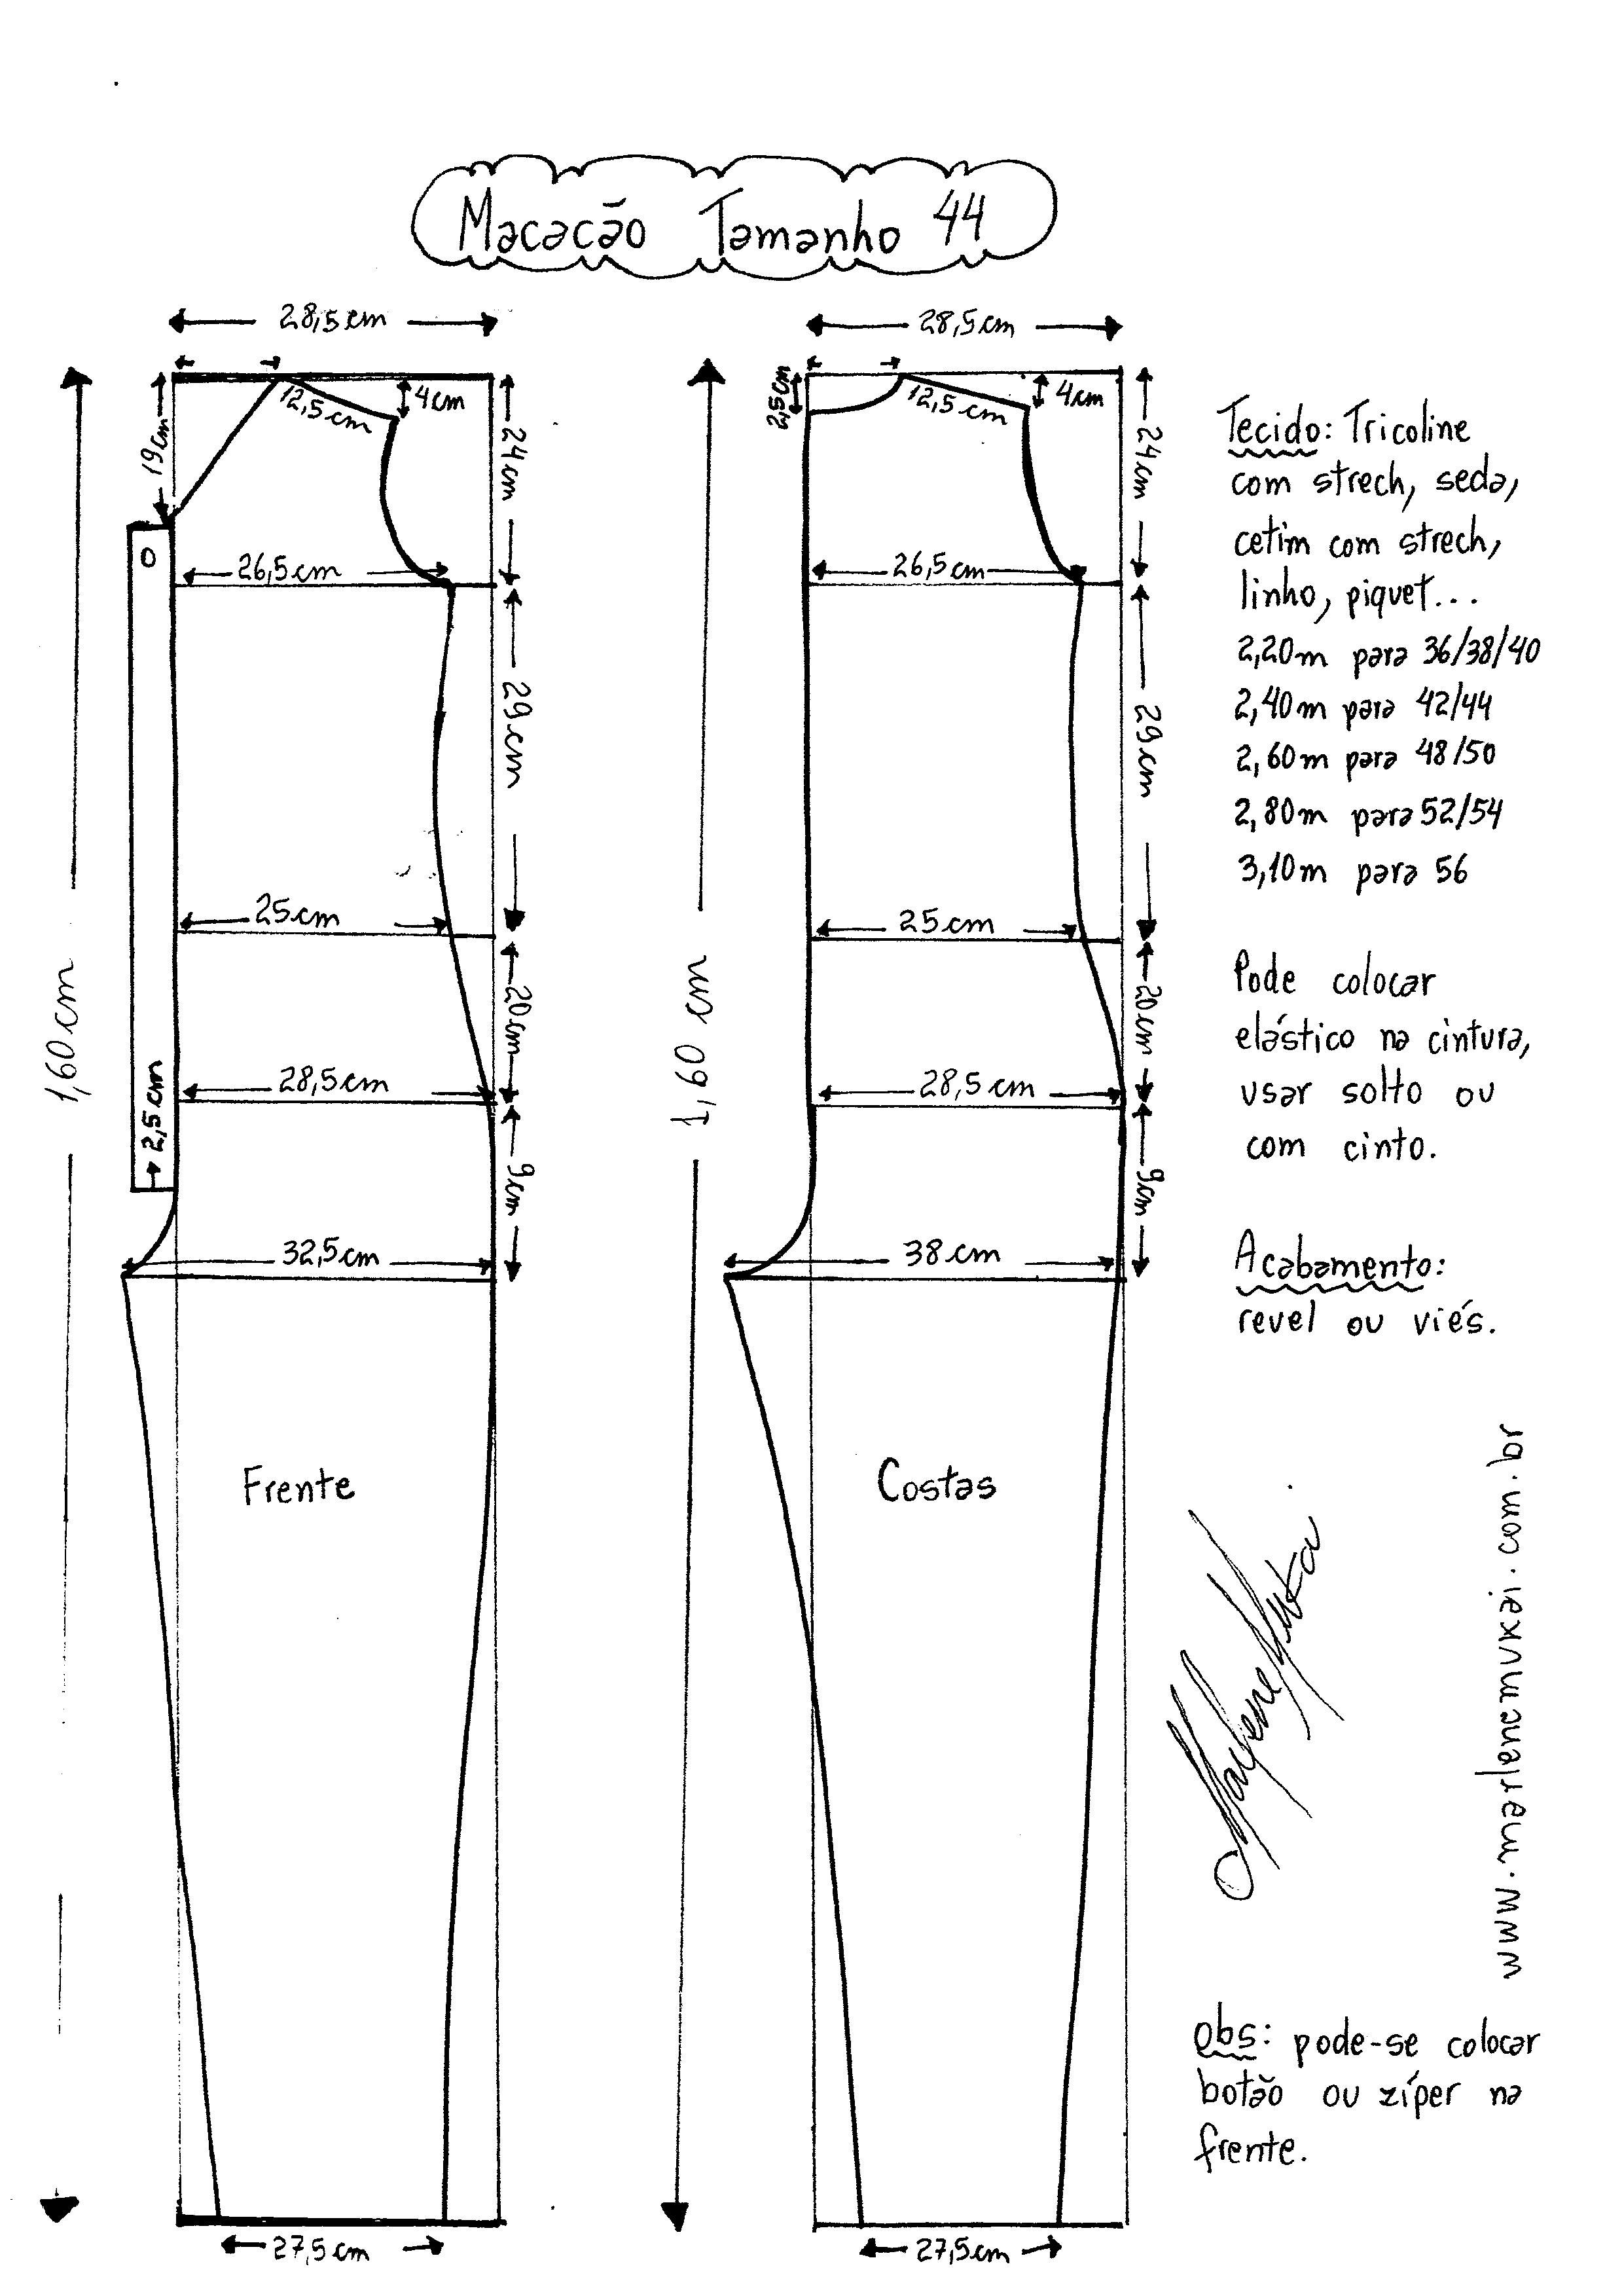 Pin by Elaine Marques on Costura | Pinterest | Pattern, Sewing and ...